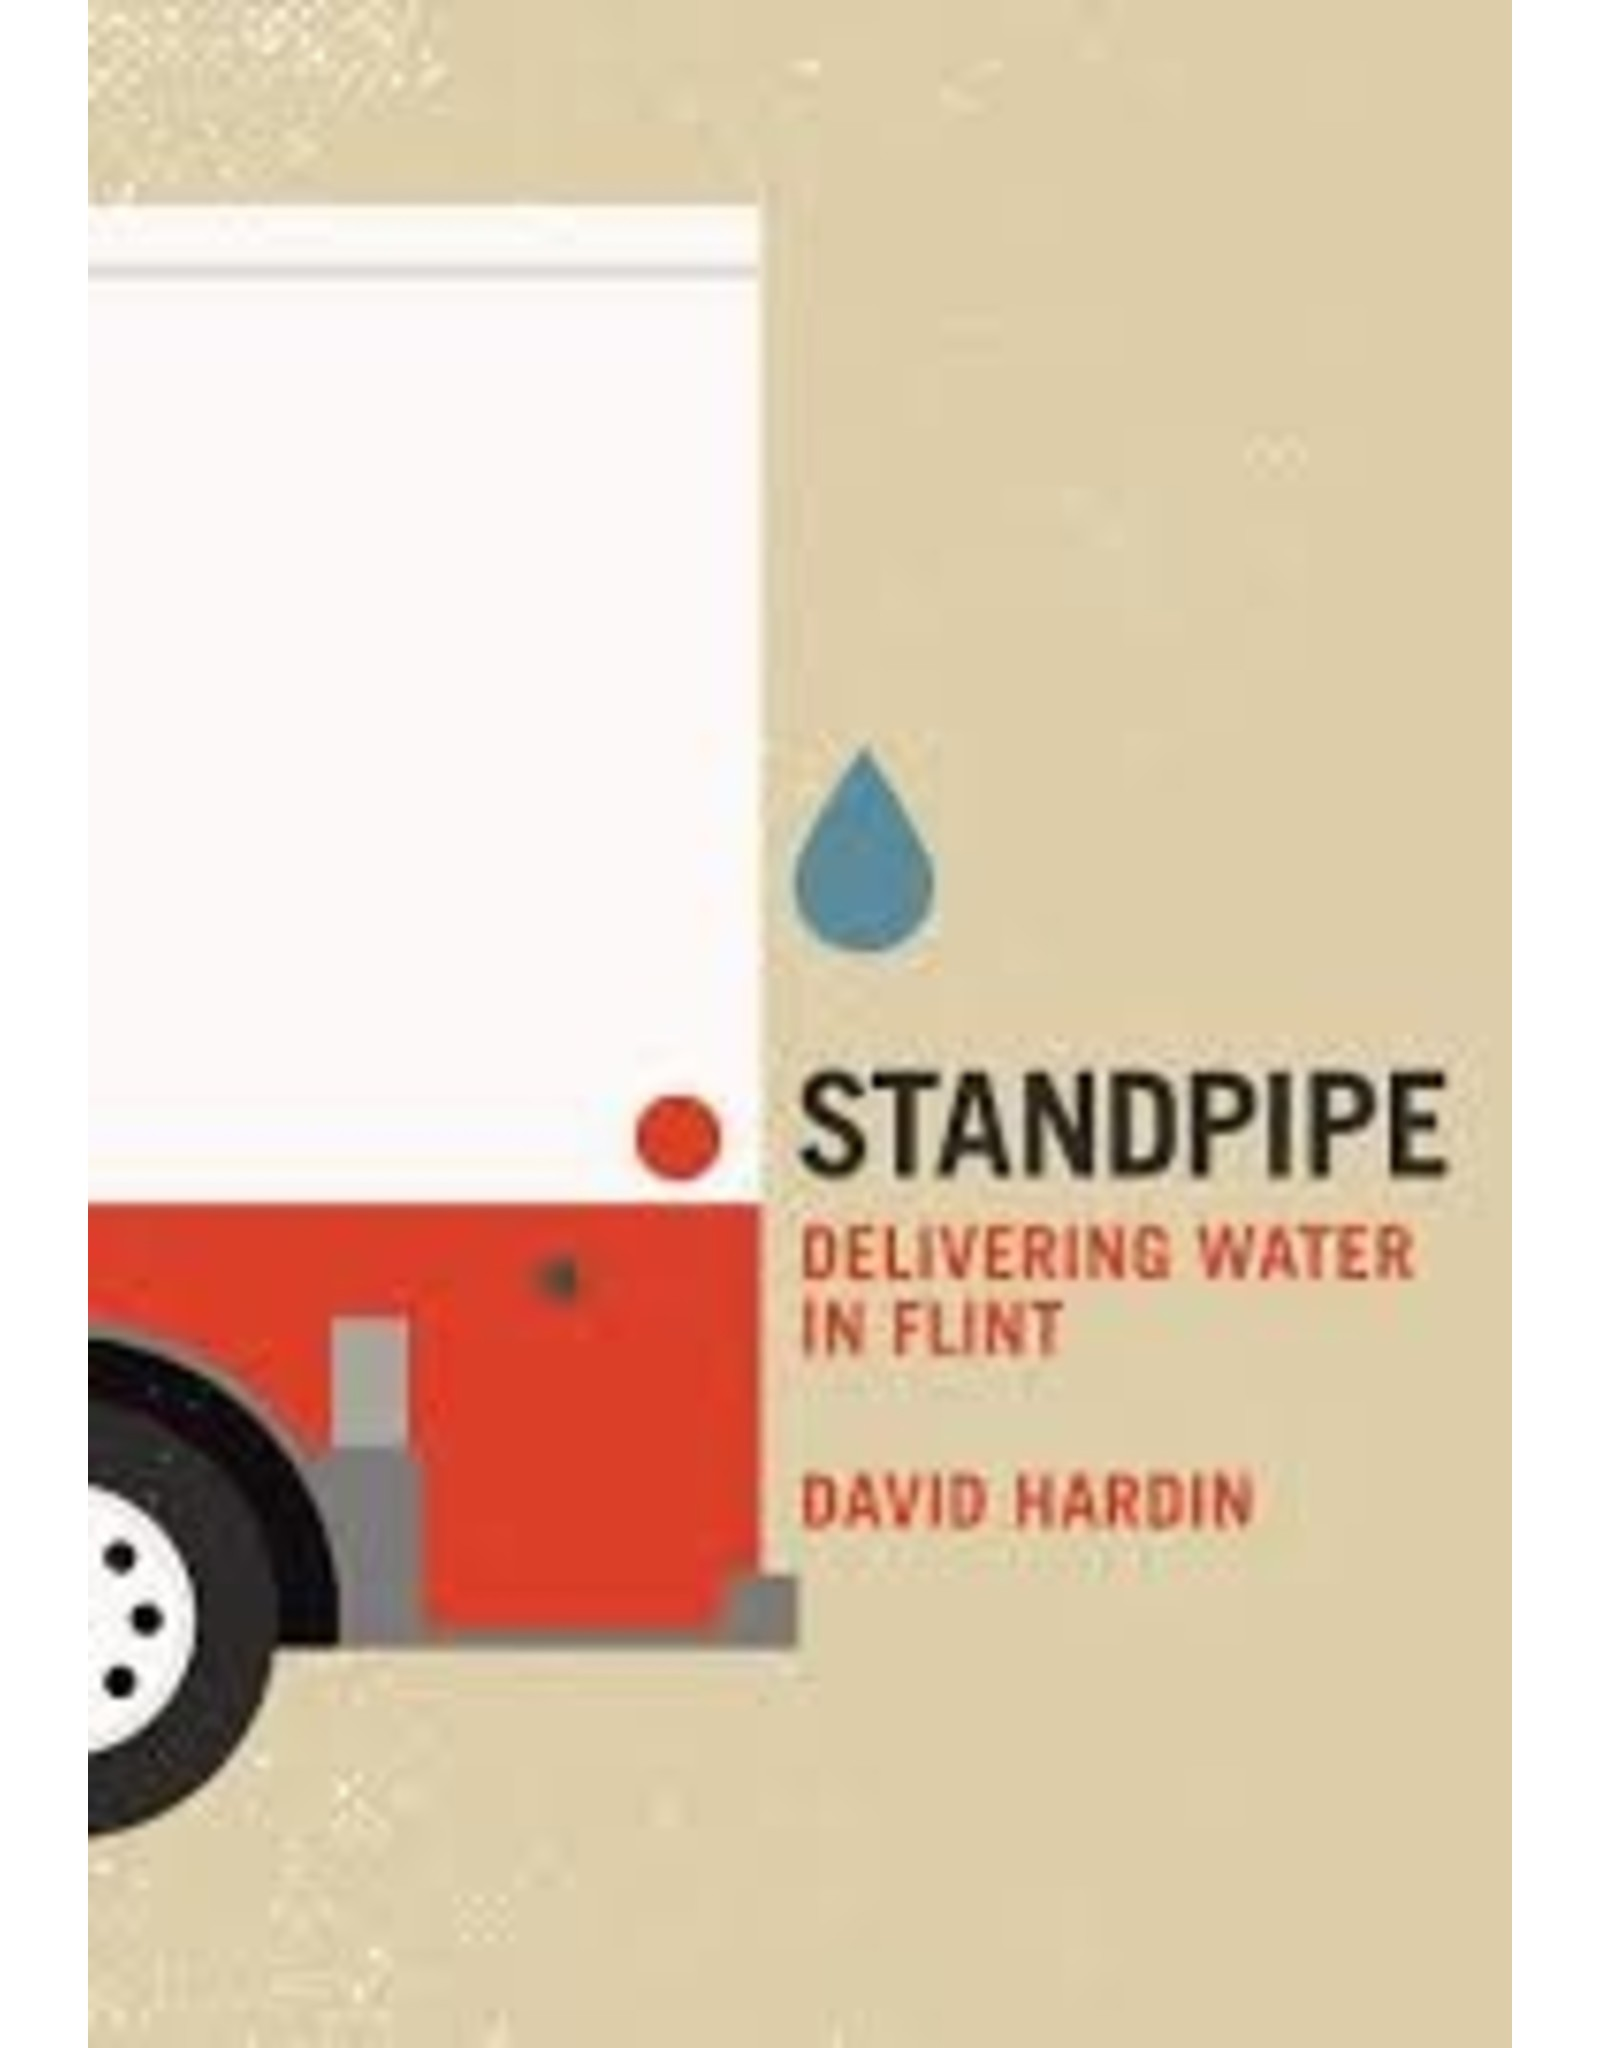 Books Standpipe: Delivering Water in Flint by David Hardin